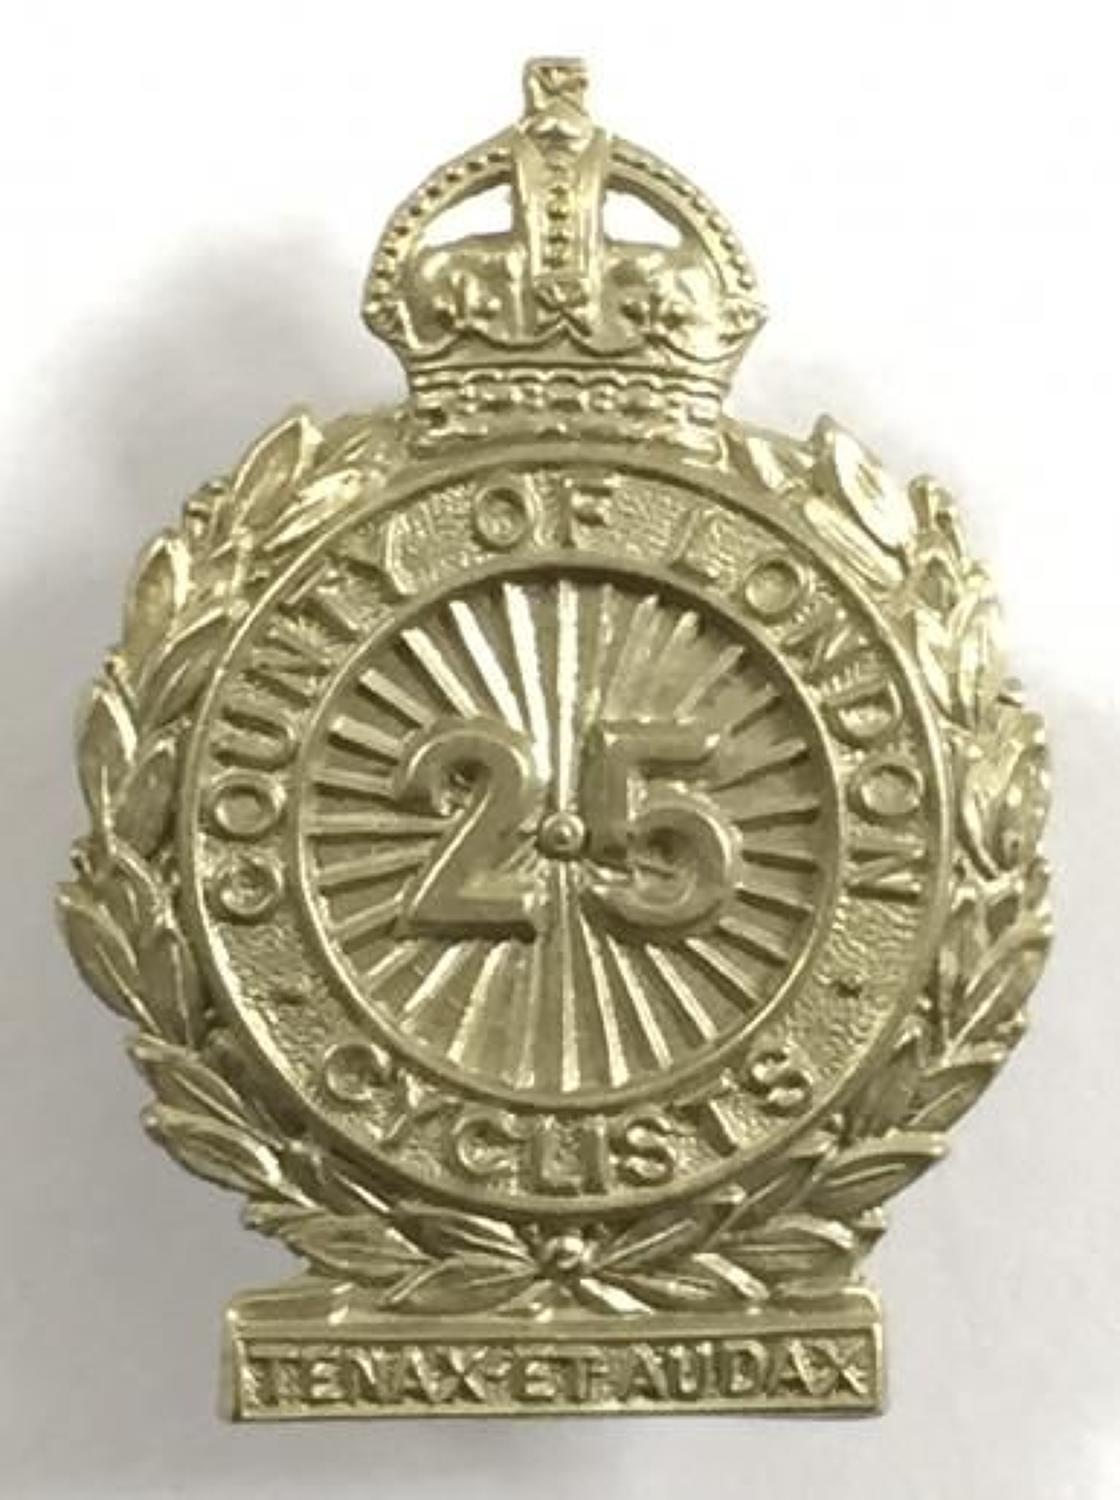 25th (Cyclist) Bn County of London Regiment Field Service Cap / Collar